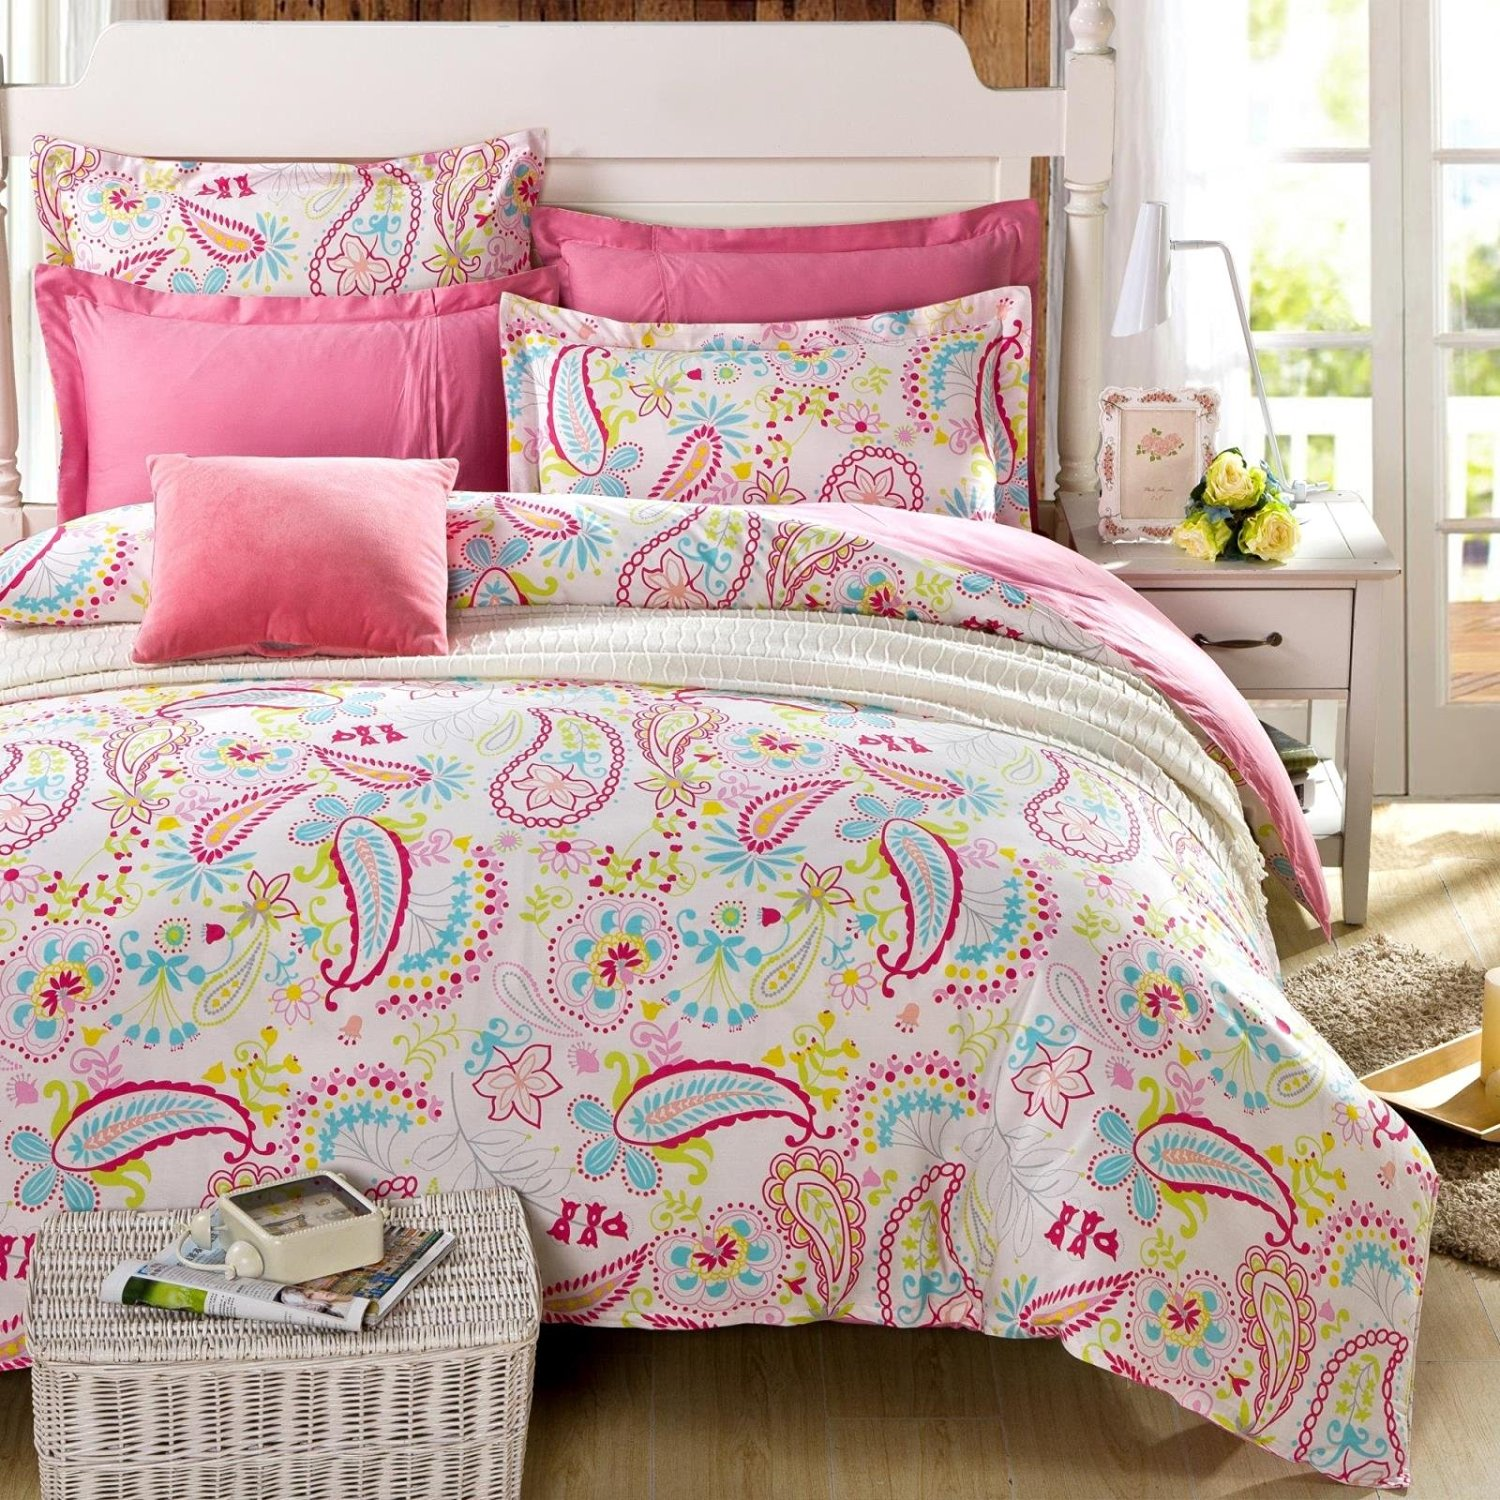 Twin bedding for teen — 1